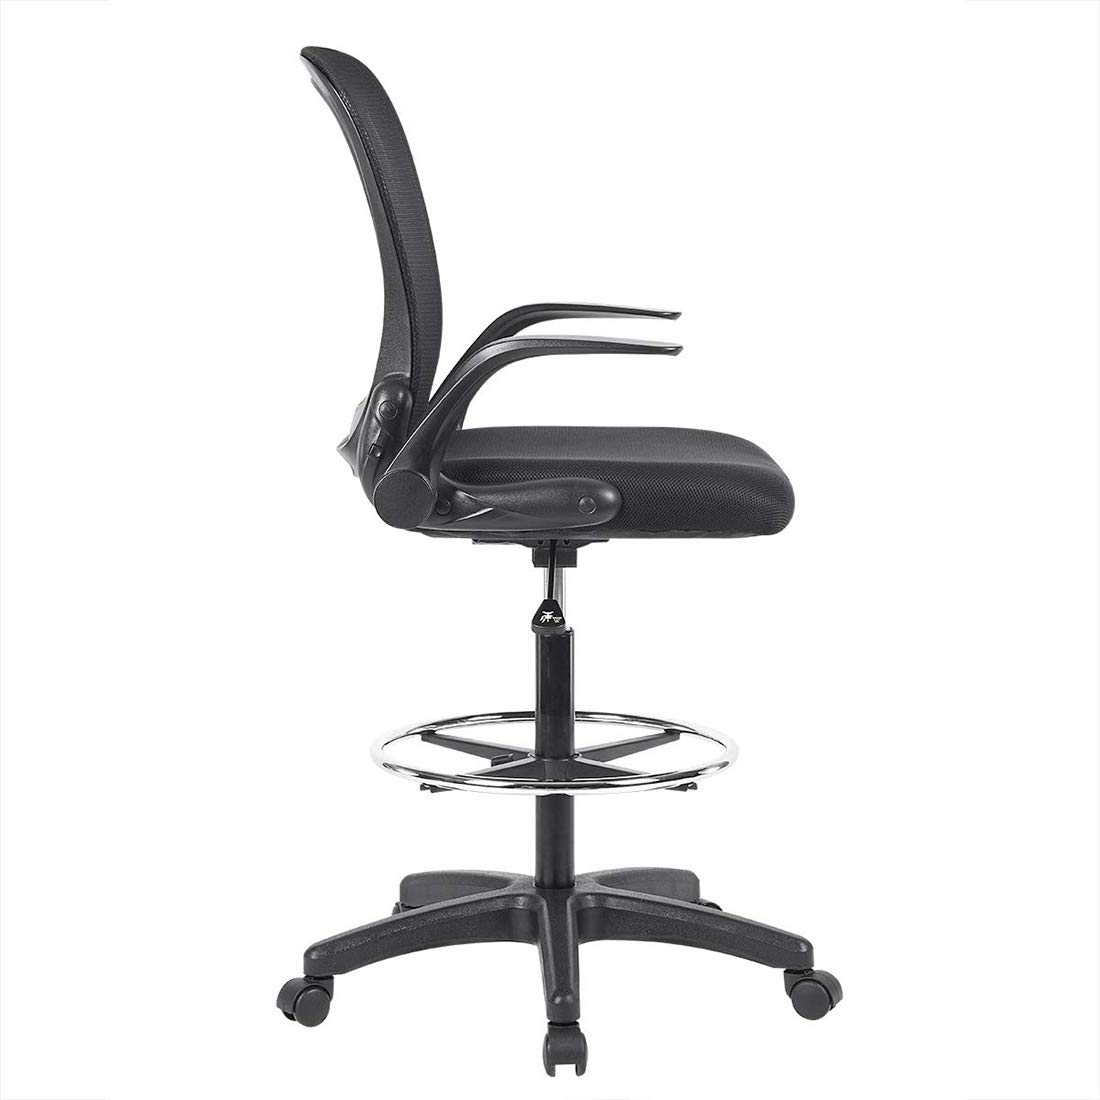 Ulikit Ergonomic Black Mesh Drafting Chair, Office Adjustable Chair Drafting Stool with Adjustable Foot Rest with Arm by Ulikit (Image #2)